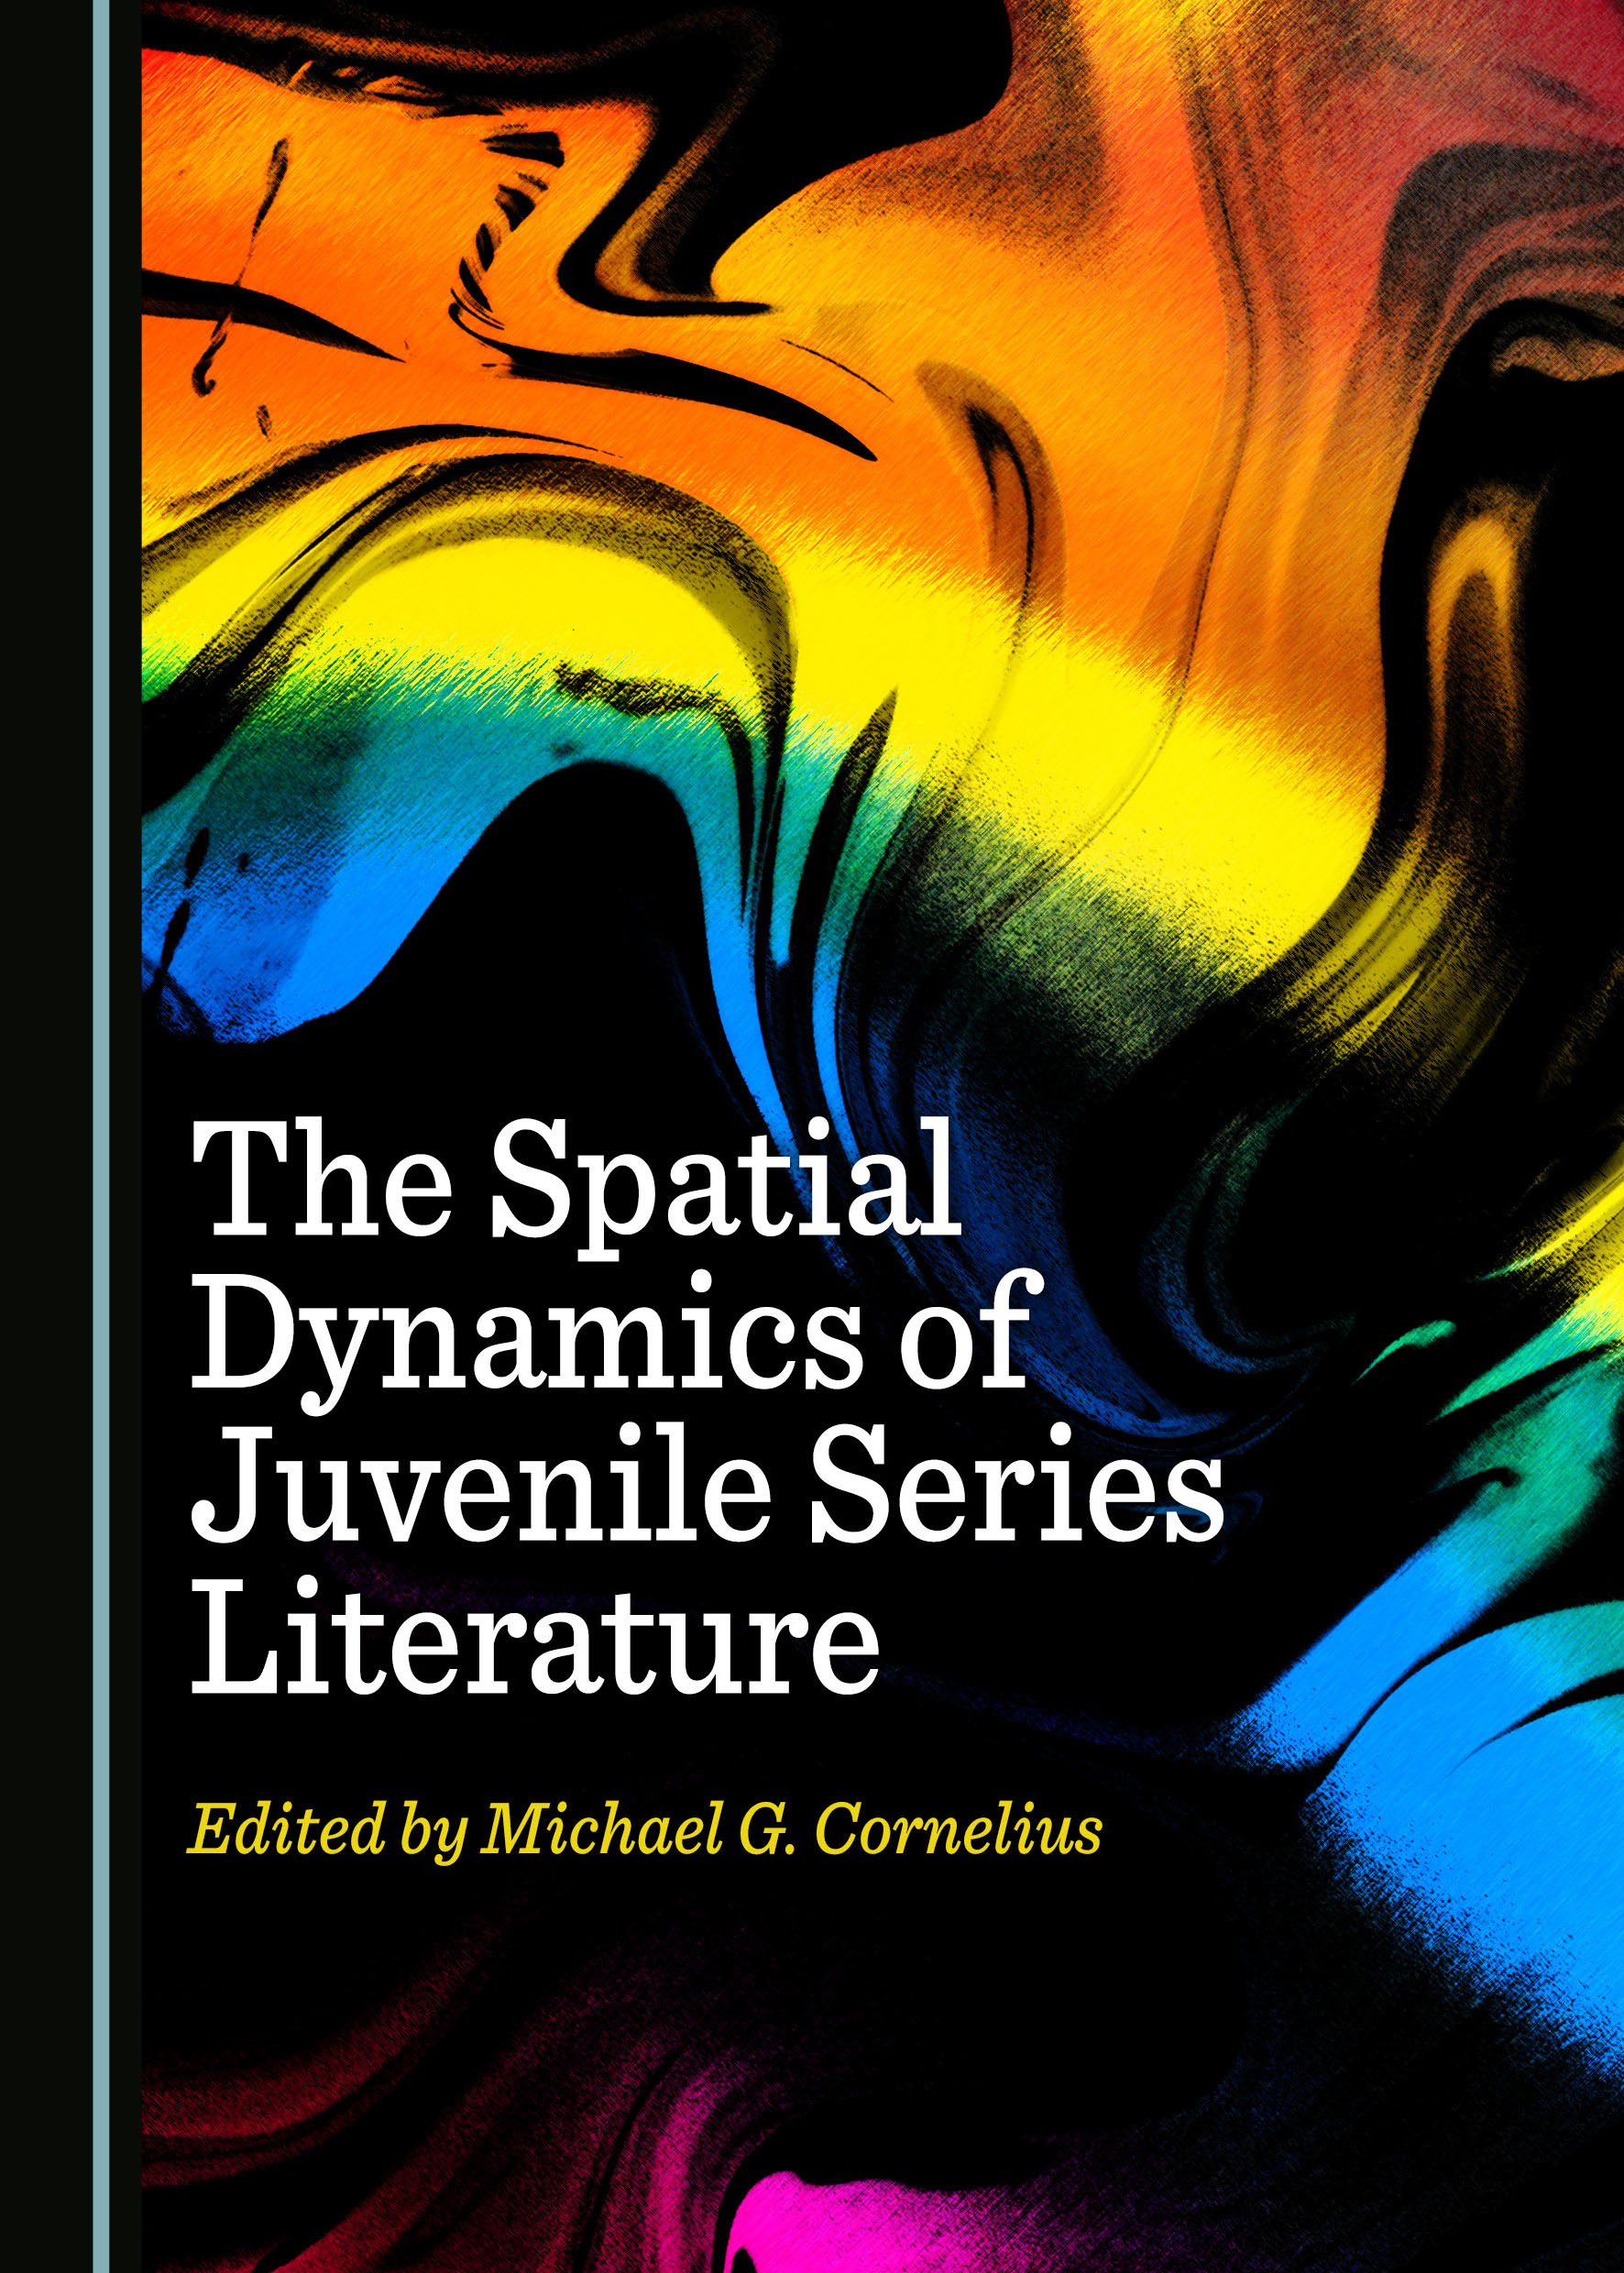 The Spatial Dynamics of Juvenile Series Literature